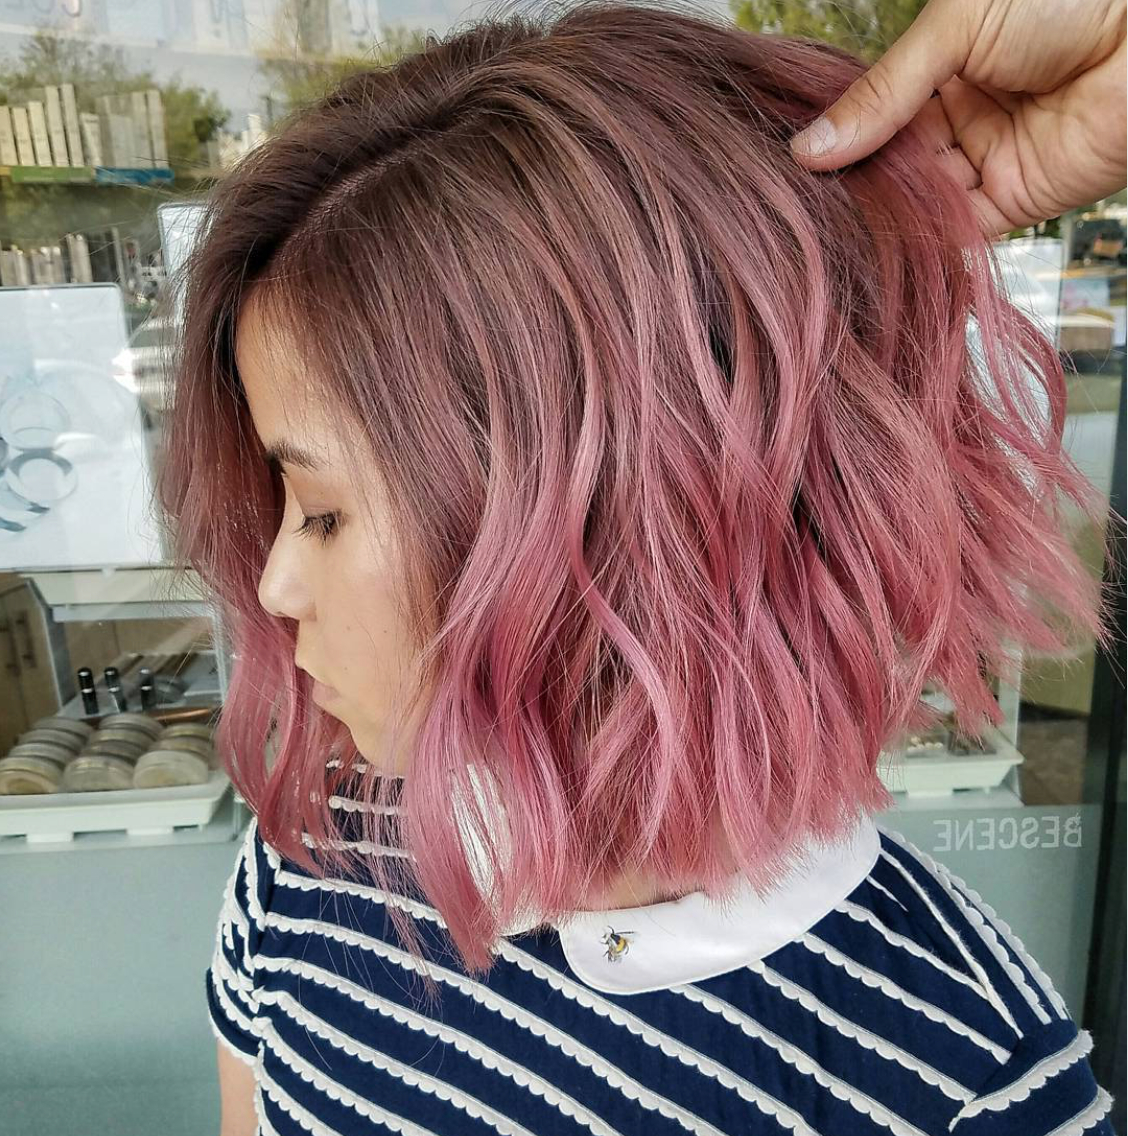 Current Pink Medium Hairstyles Throughout 35 Hottest Short Ombre Hairstyles For 2019 – Best Ombre Hair Color Ideas (View 9 of 20)